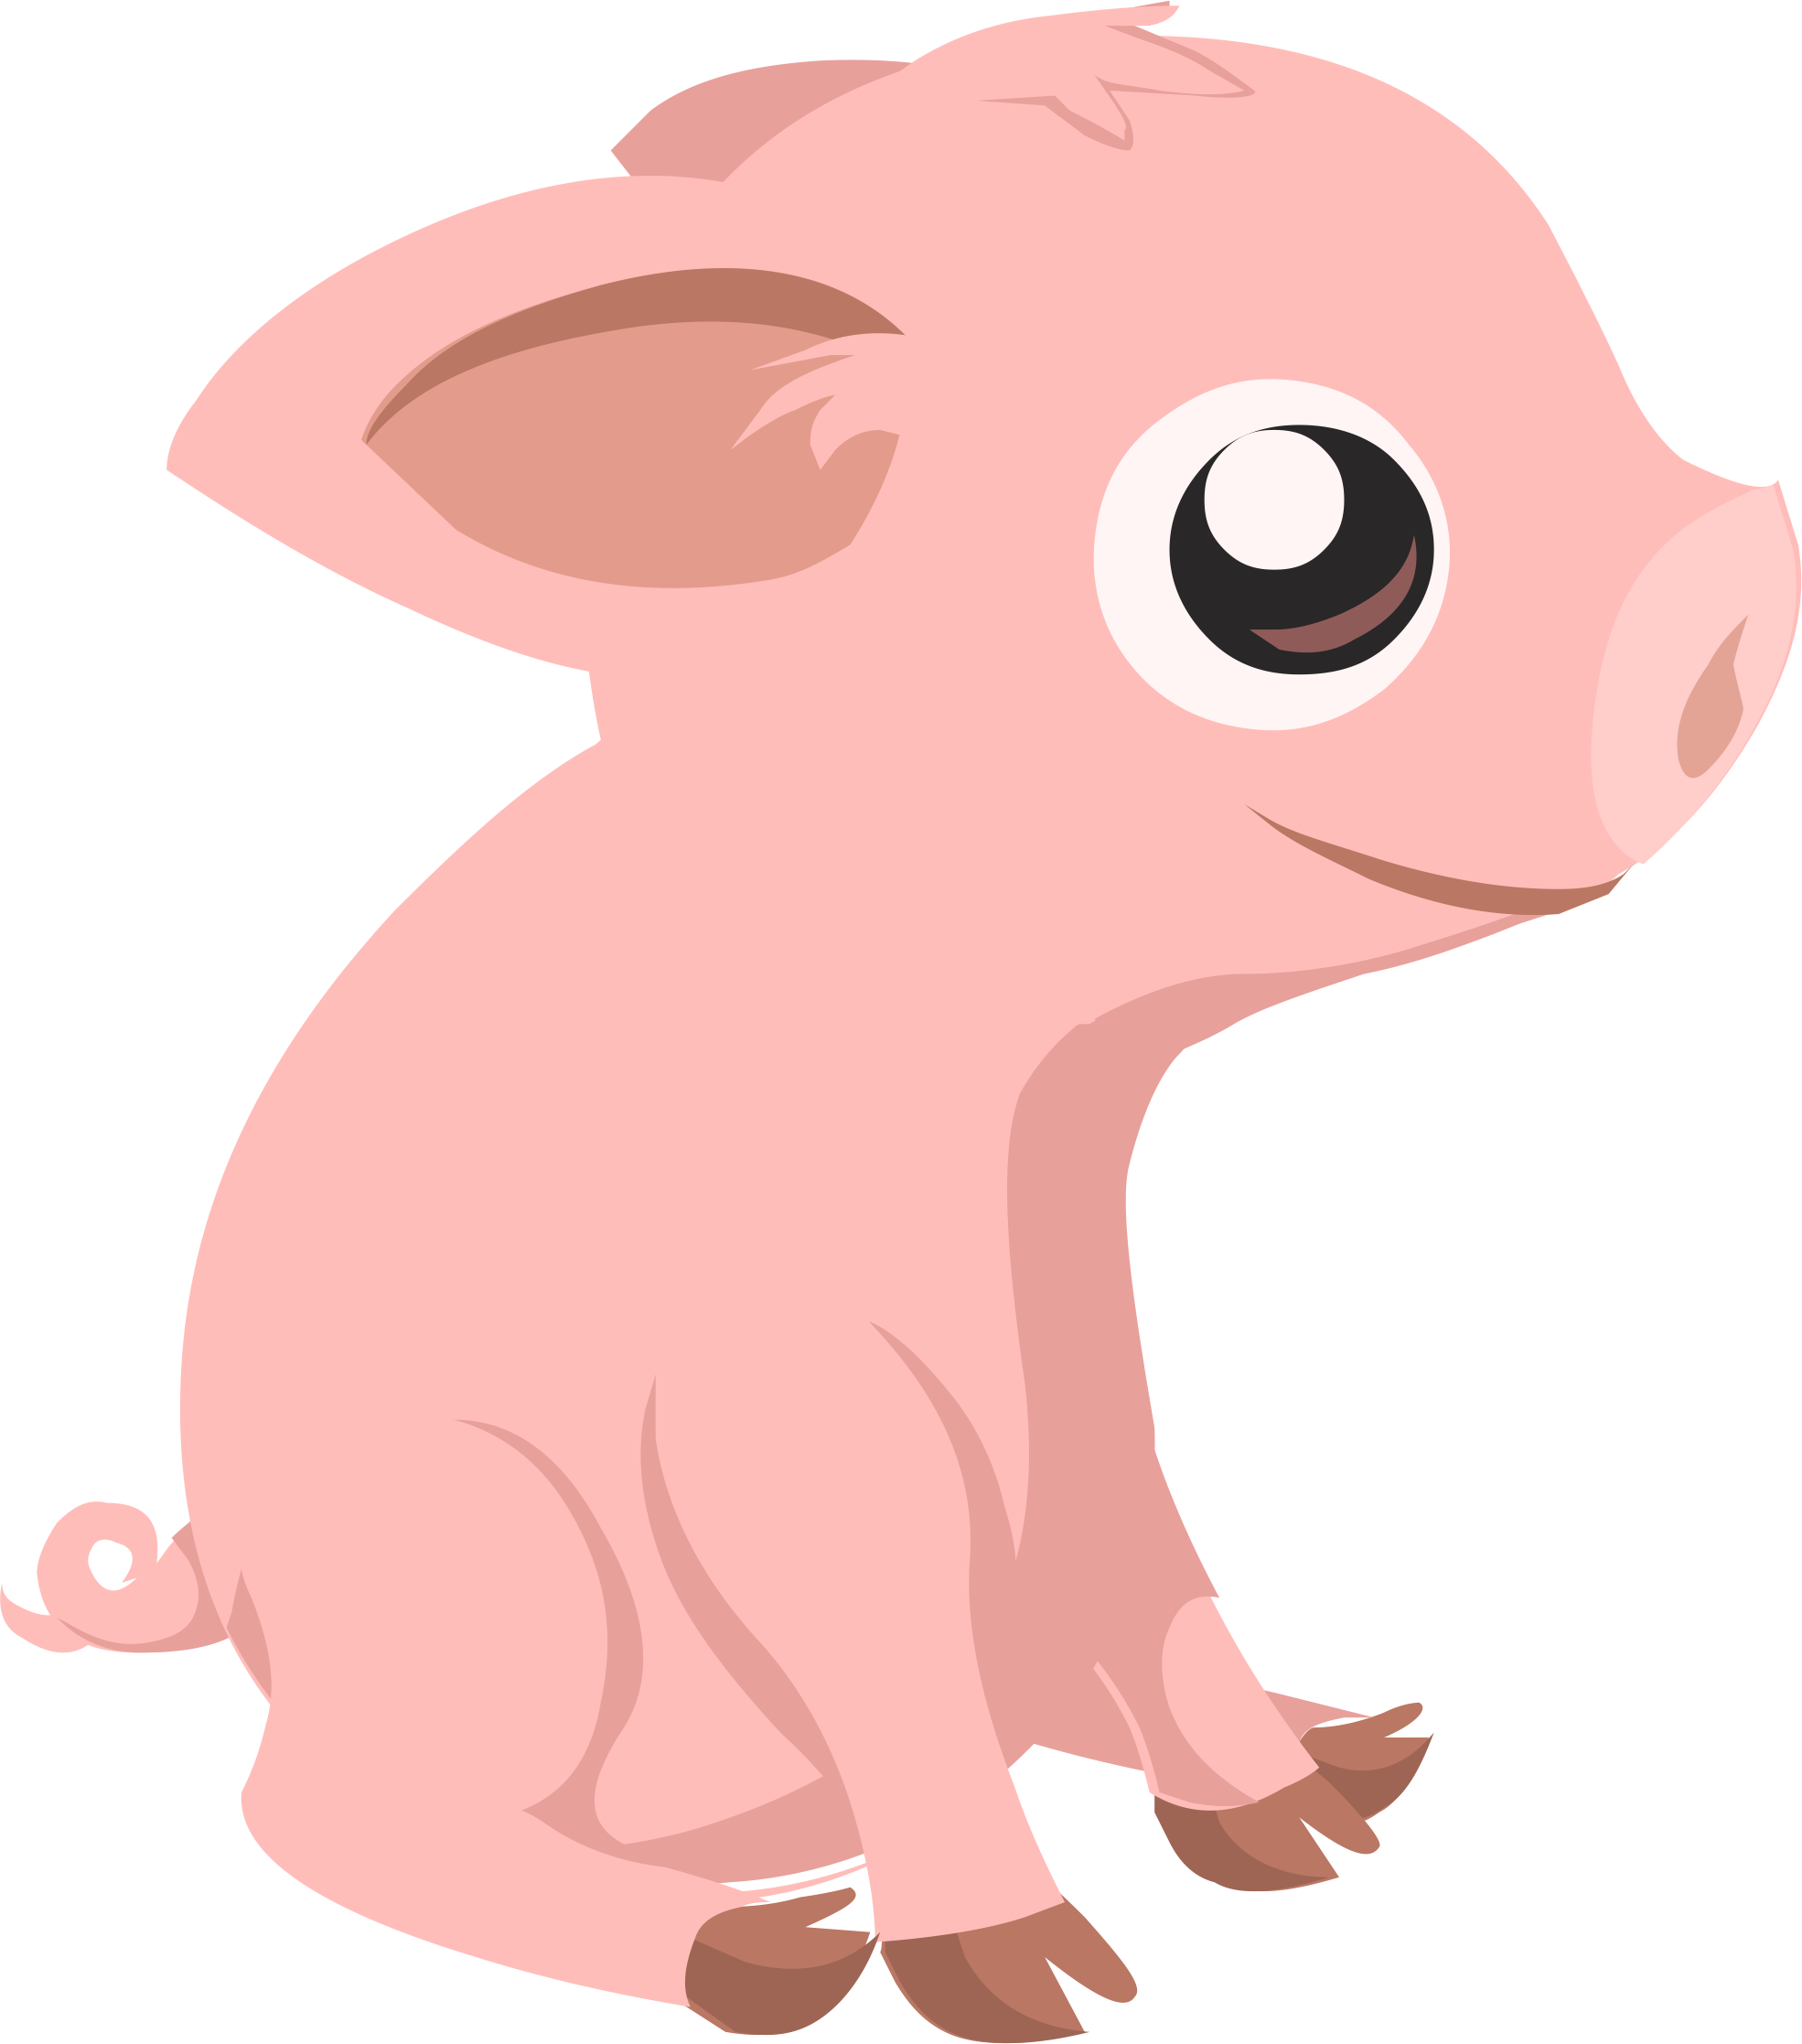 Inhabitants Piglet (no AI symbols) by Fred the Oyster